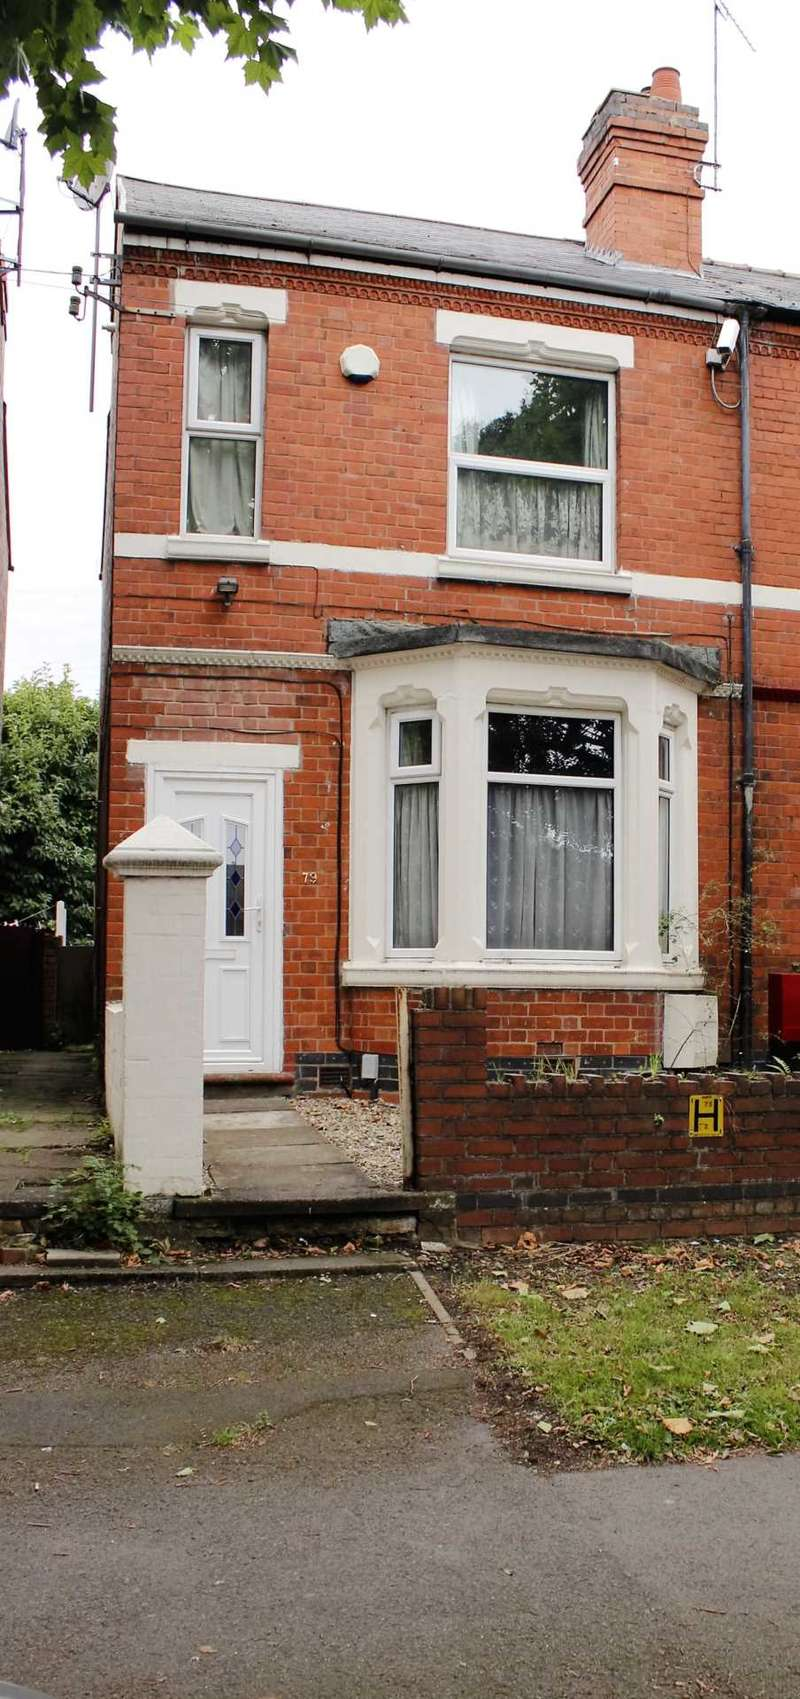 3 Bedrooms Semi Detached House for sale in Lythalls Lane, Coventry